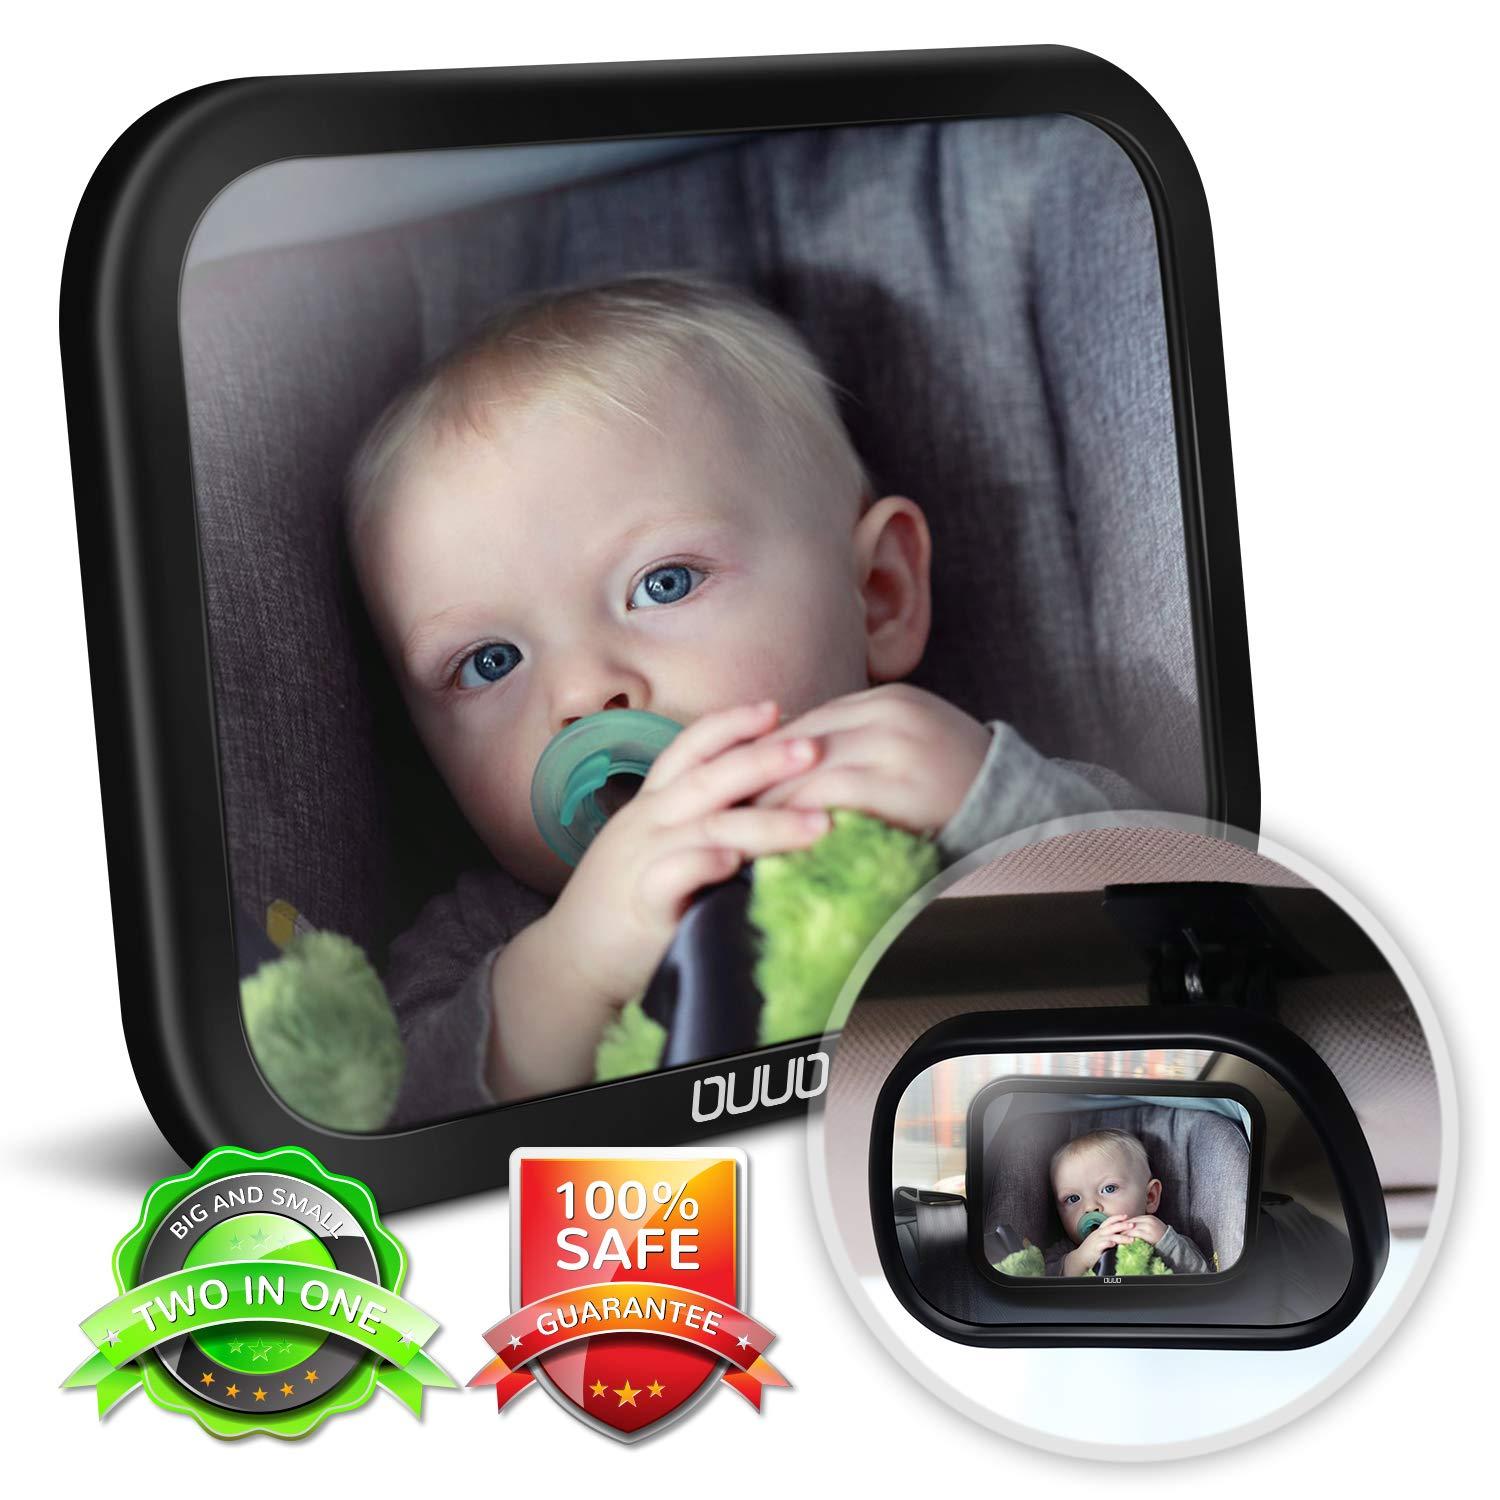 Baby Car Mirror,2 in 1 Car Seat Mirror for Rear Facing Infant with 360°Adjustable Crystal Clear View, Crash Tested and Certified for Safety by OUUO